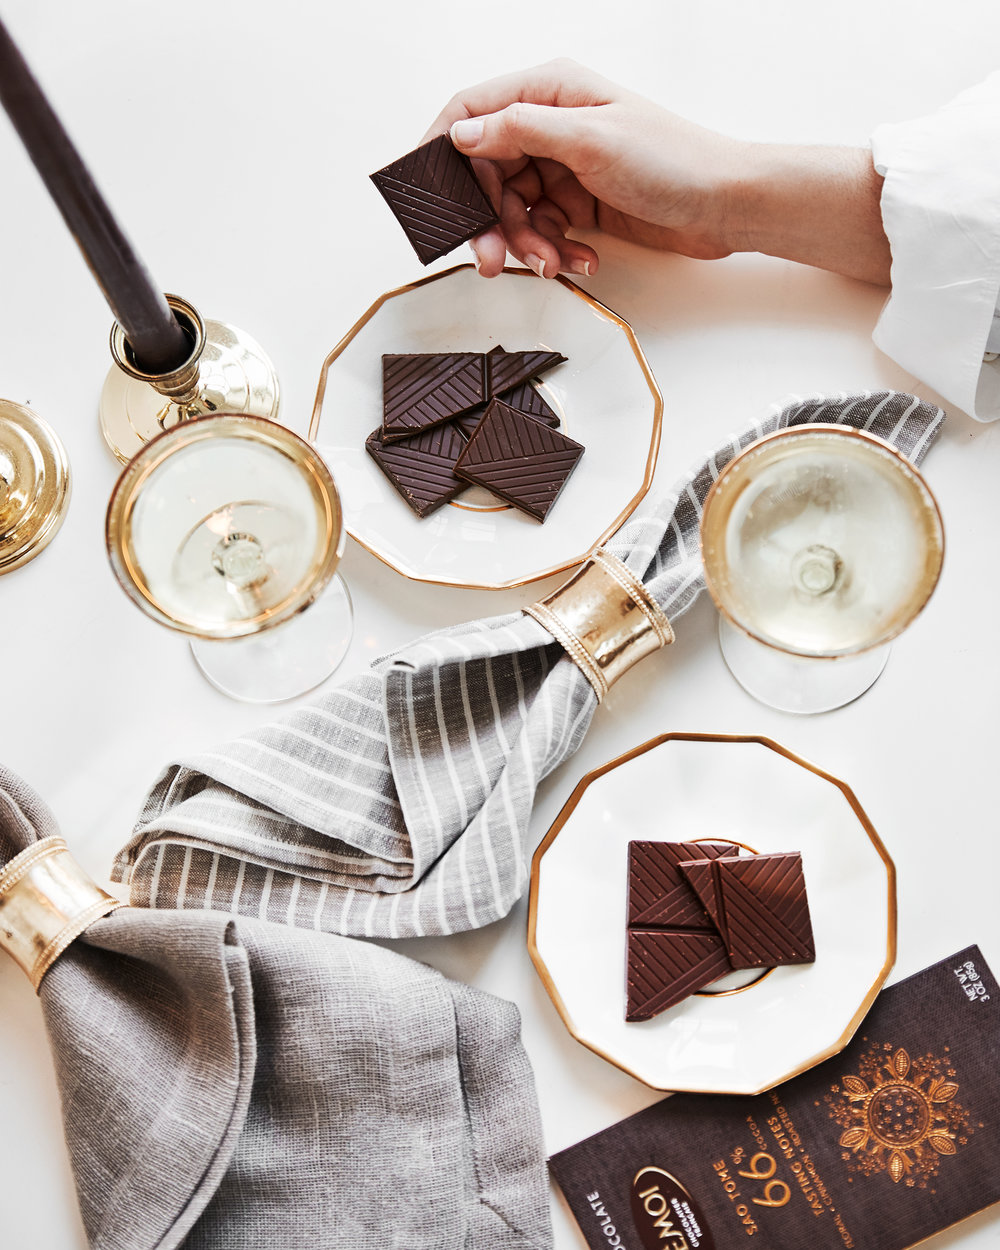 Chocolate + bubbles - featuring CéMoi Chocolatier